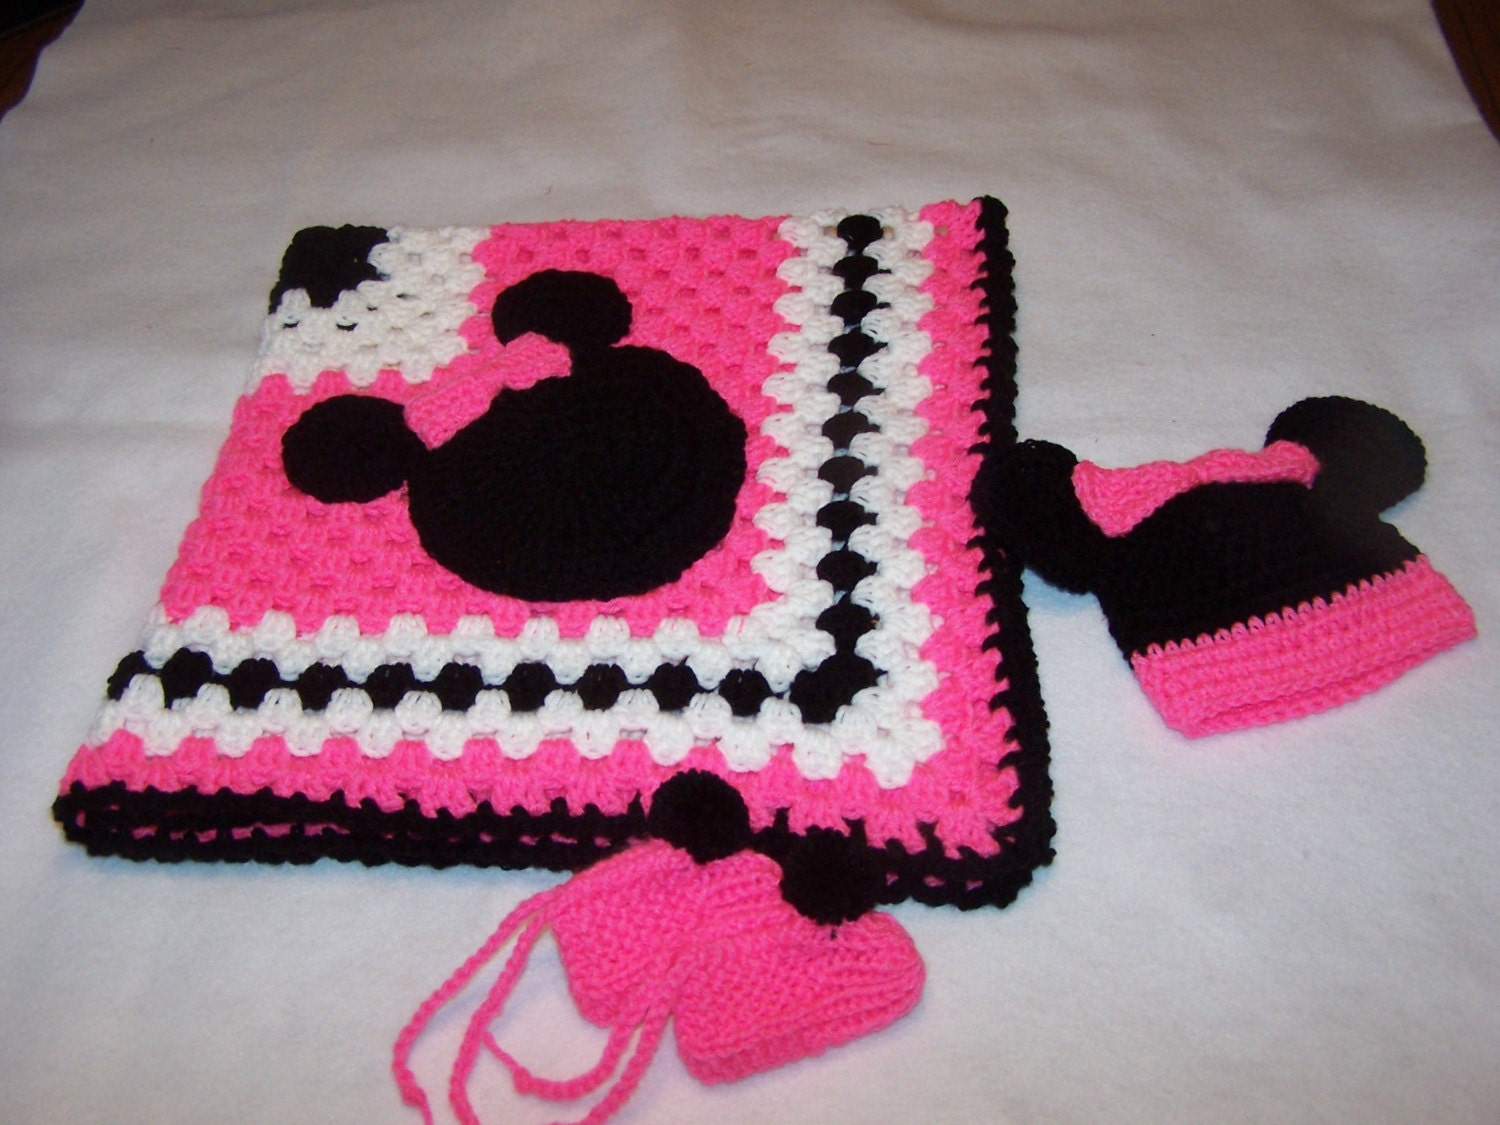 Free Crochet Pattern For Minnie Mouse Afghan